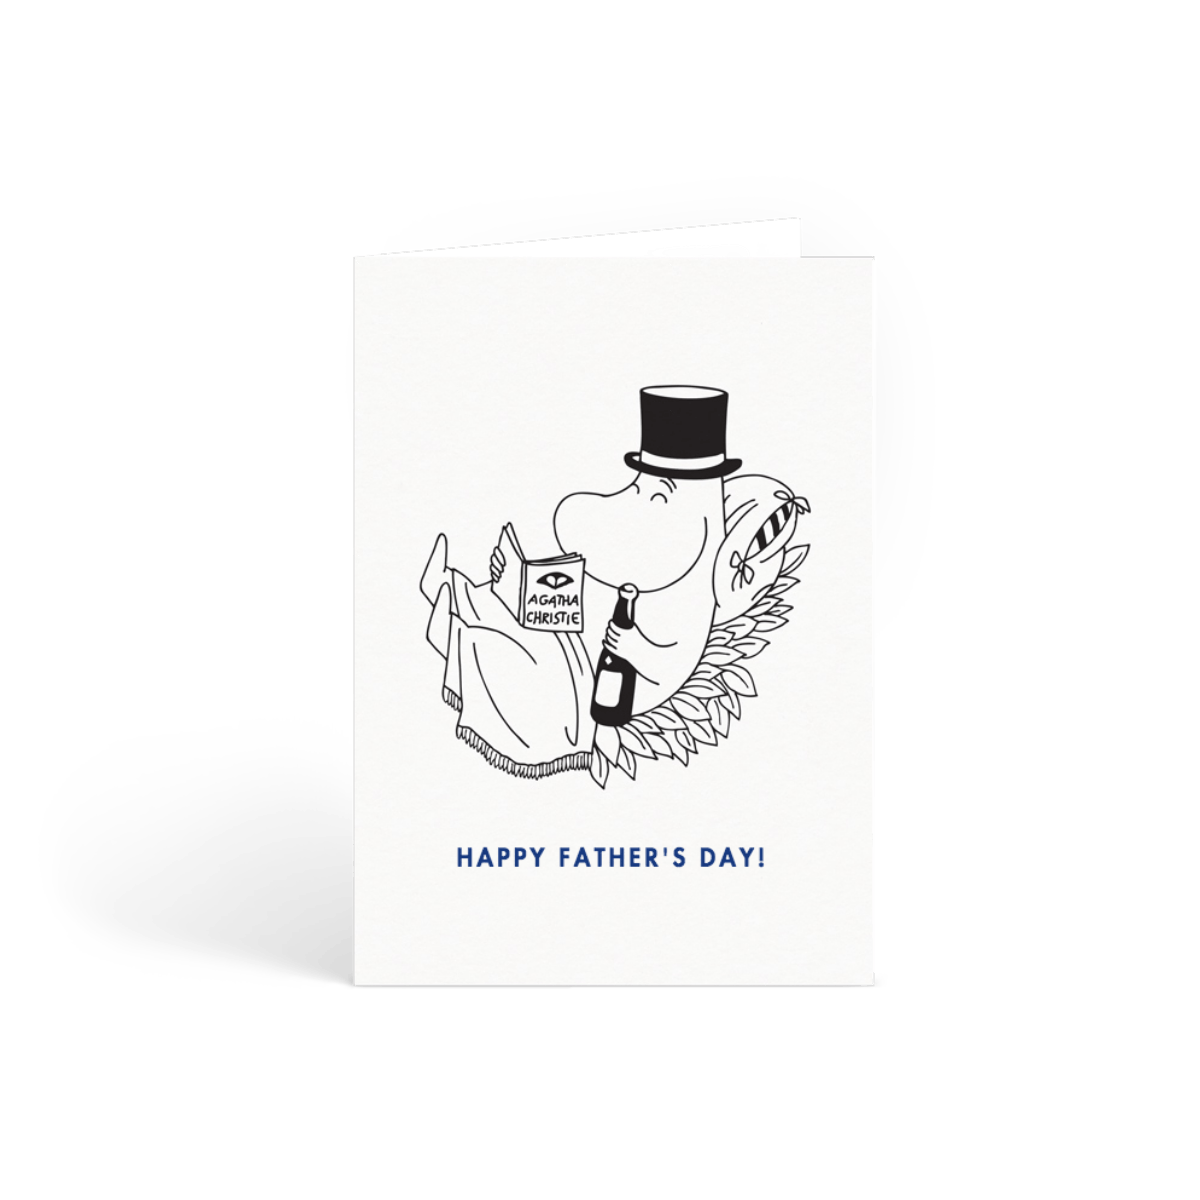 Https%3a%2f%2fwww.papier.com%2fproduct image%2f23426%2f2%2fhammock moominpappa 5876 front 1581449480.png?ixlib=rb 1.1